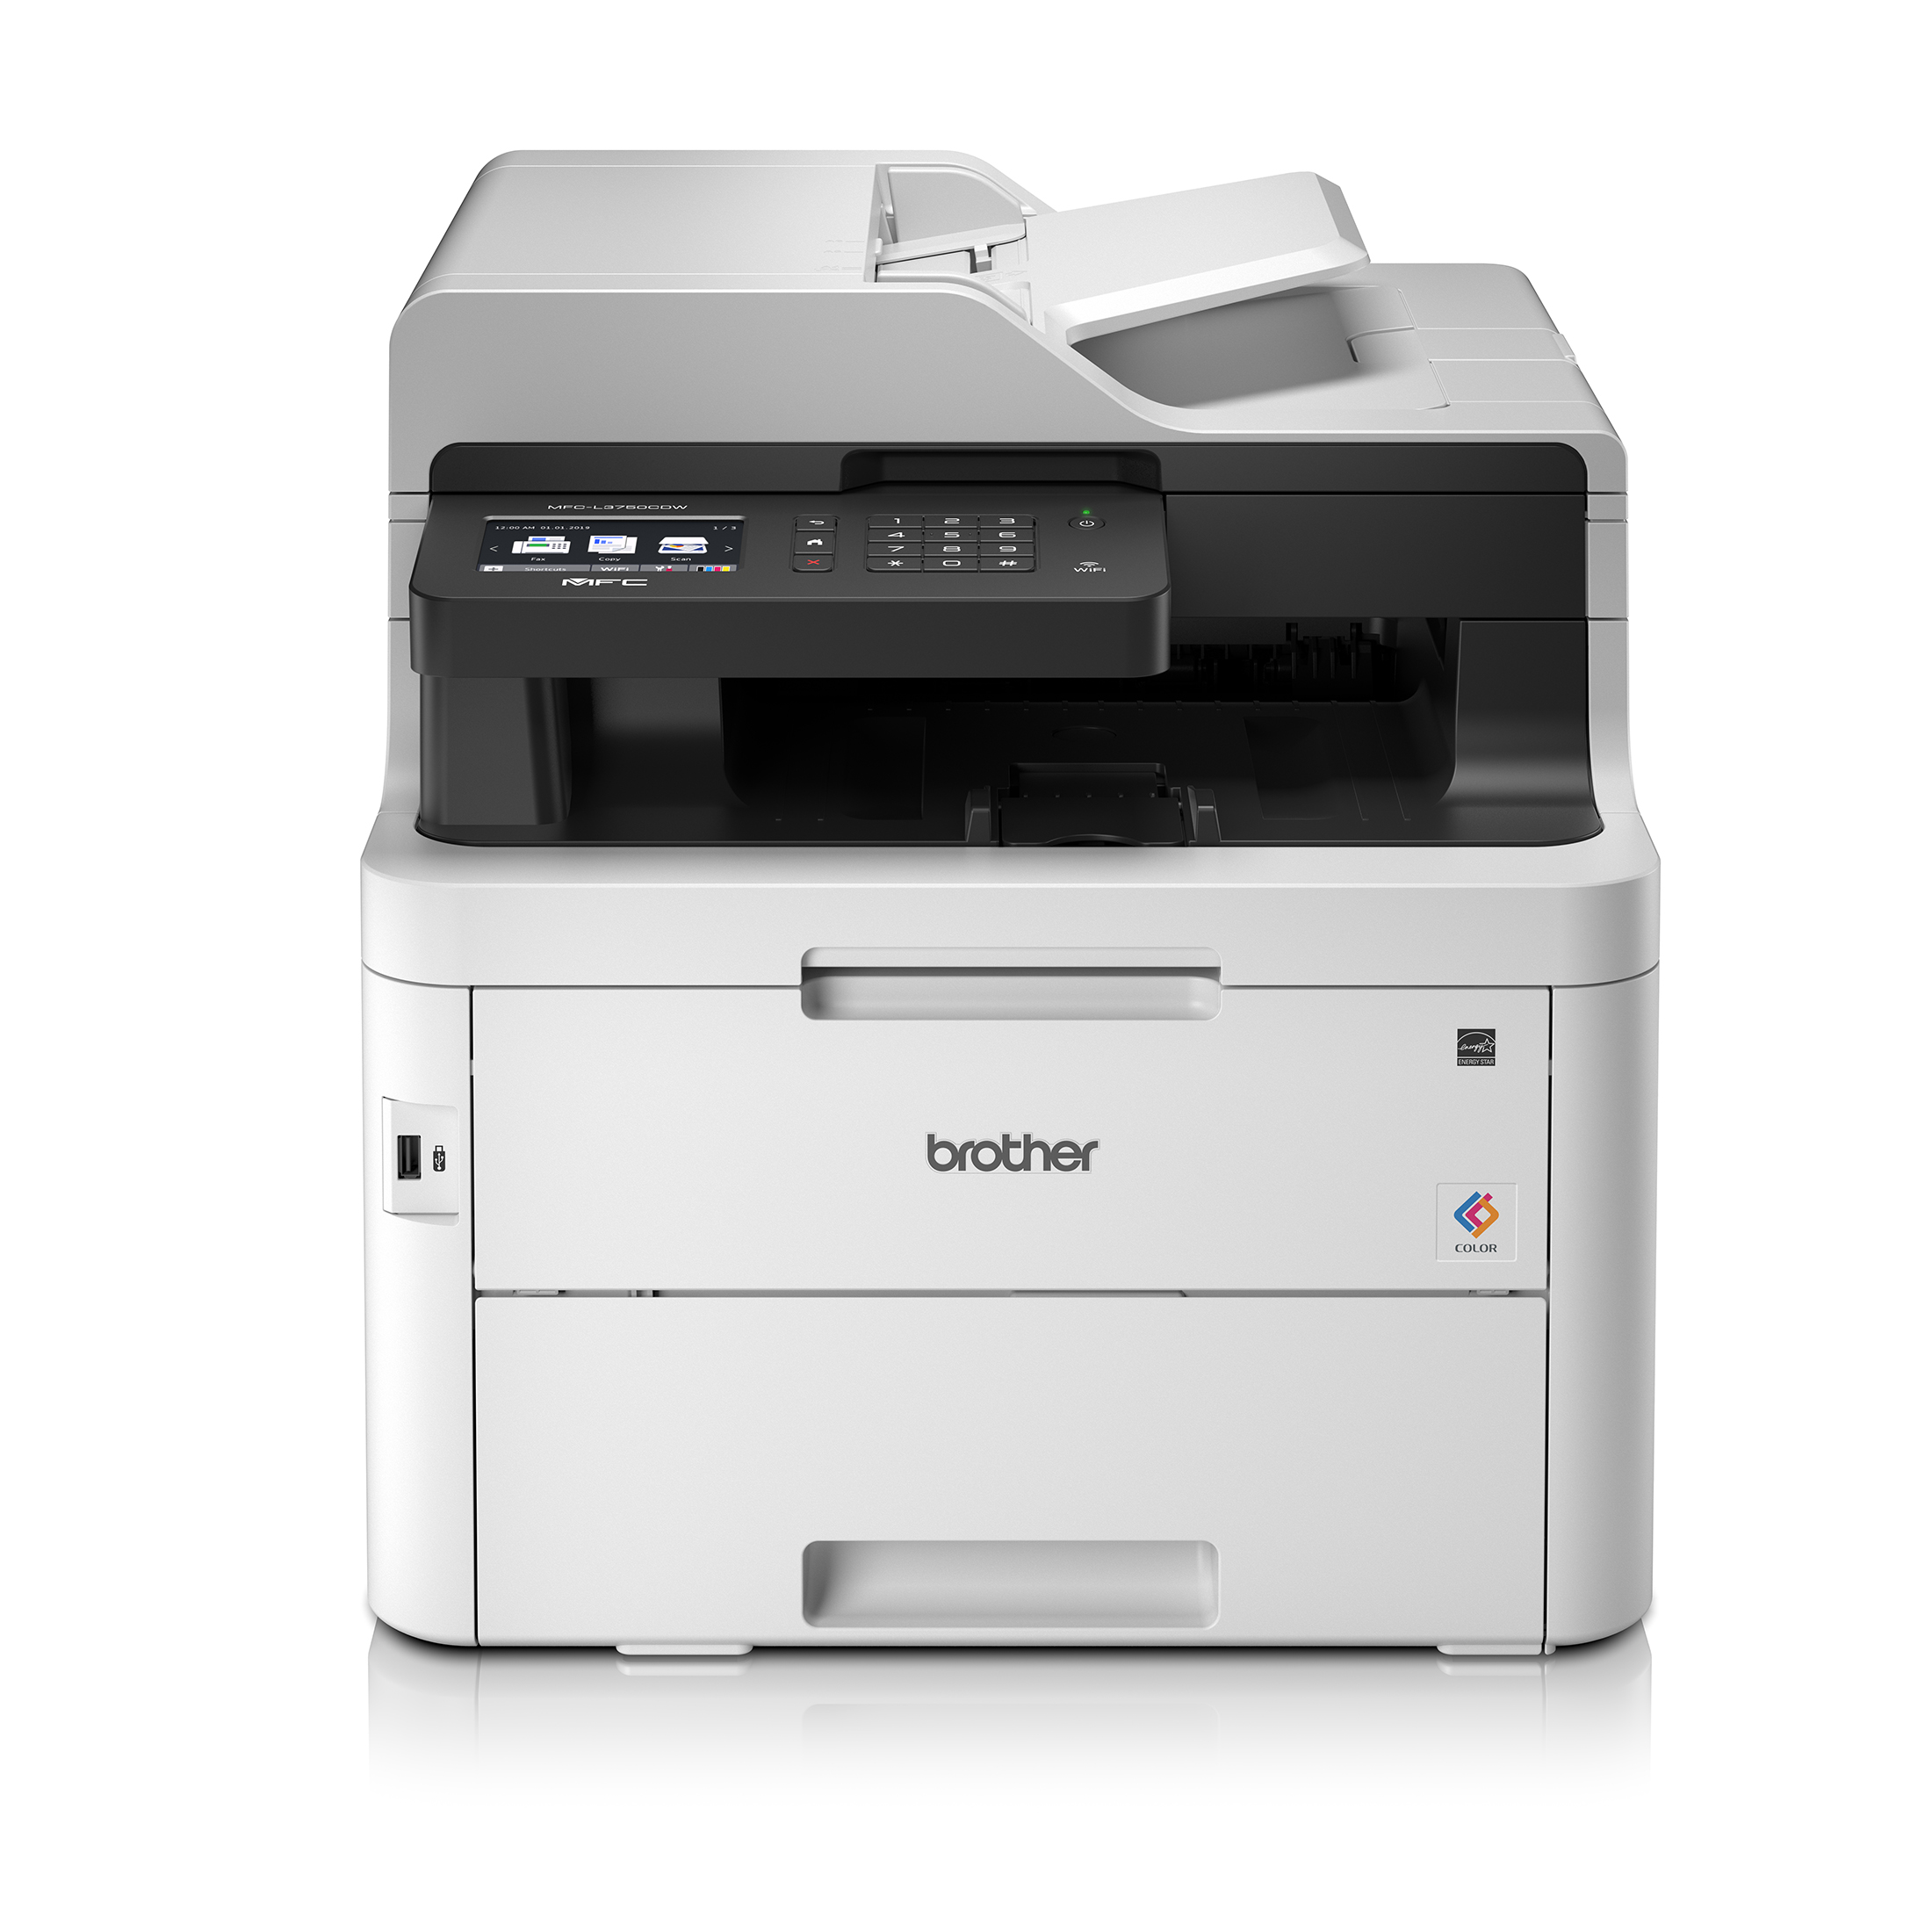 Multifunctional Machines Brother MFC-L3750CDW Colour Laser Printer 4-in-1 LED Display Ref MFC-L3750CDW